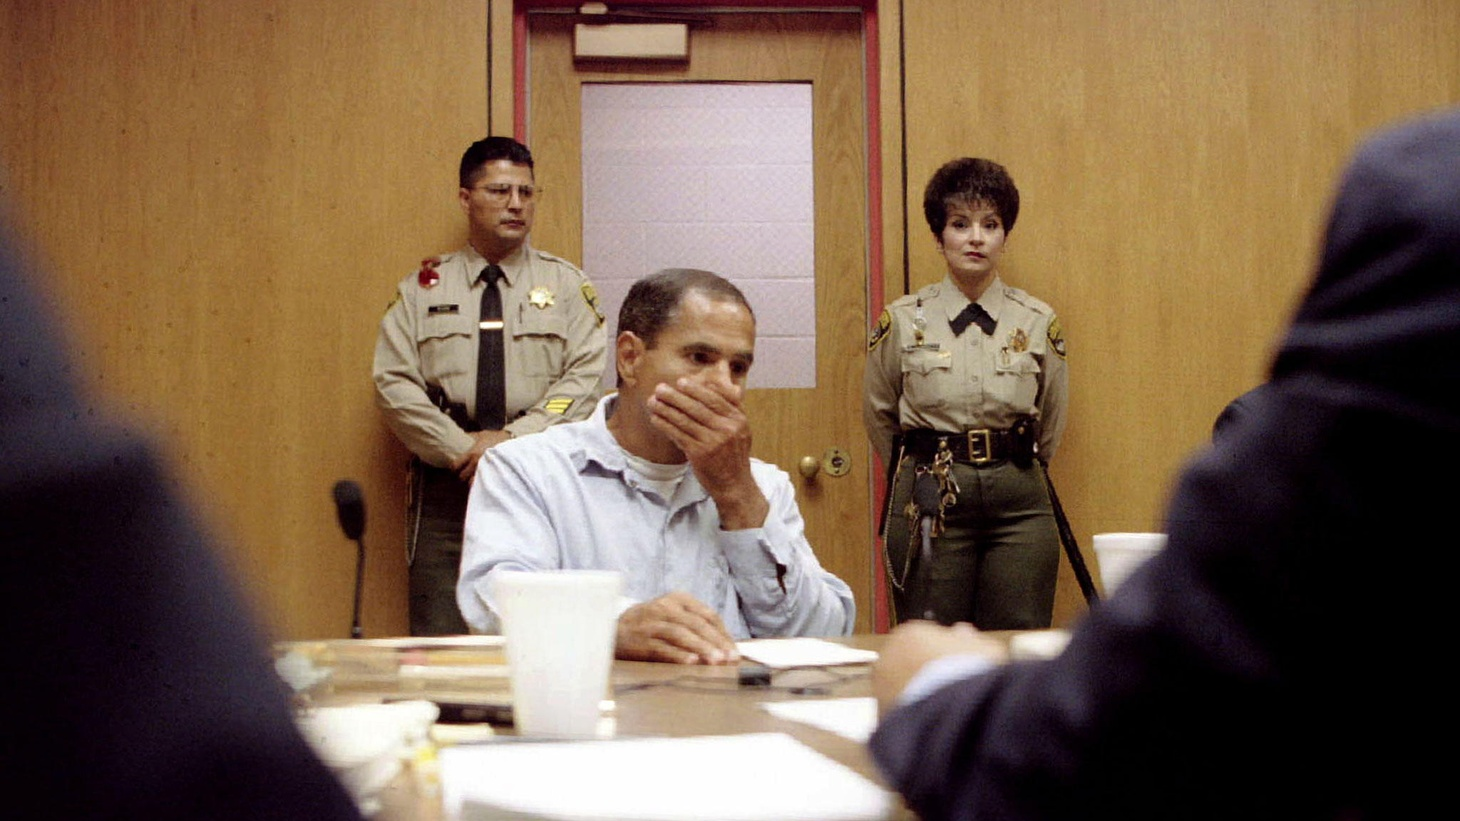 Sirhan Sirhan listens as the parole board (foreground) gives him the reasons it is denying him parole at his tenth parole hearing at the Corcoran State Prison in Corcoran, California, June 18, 1997. Sirhan was convicted of slaying Sen. Robert Kennedy.